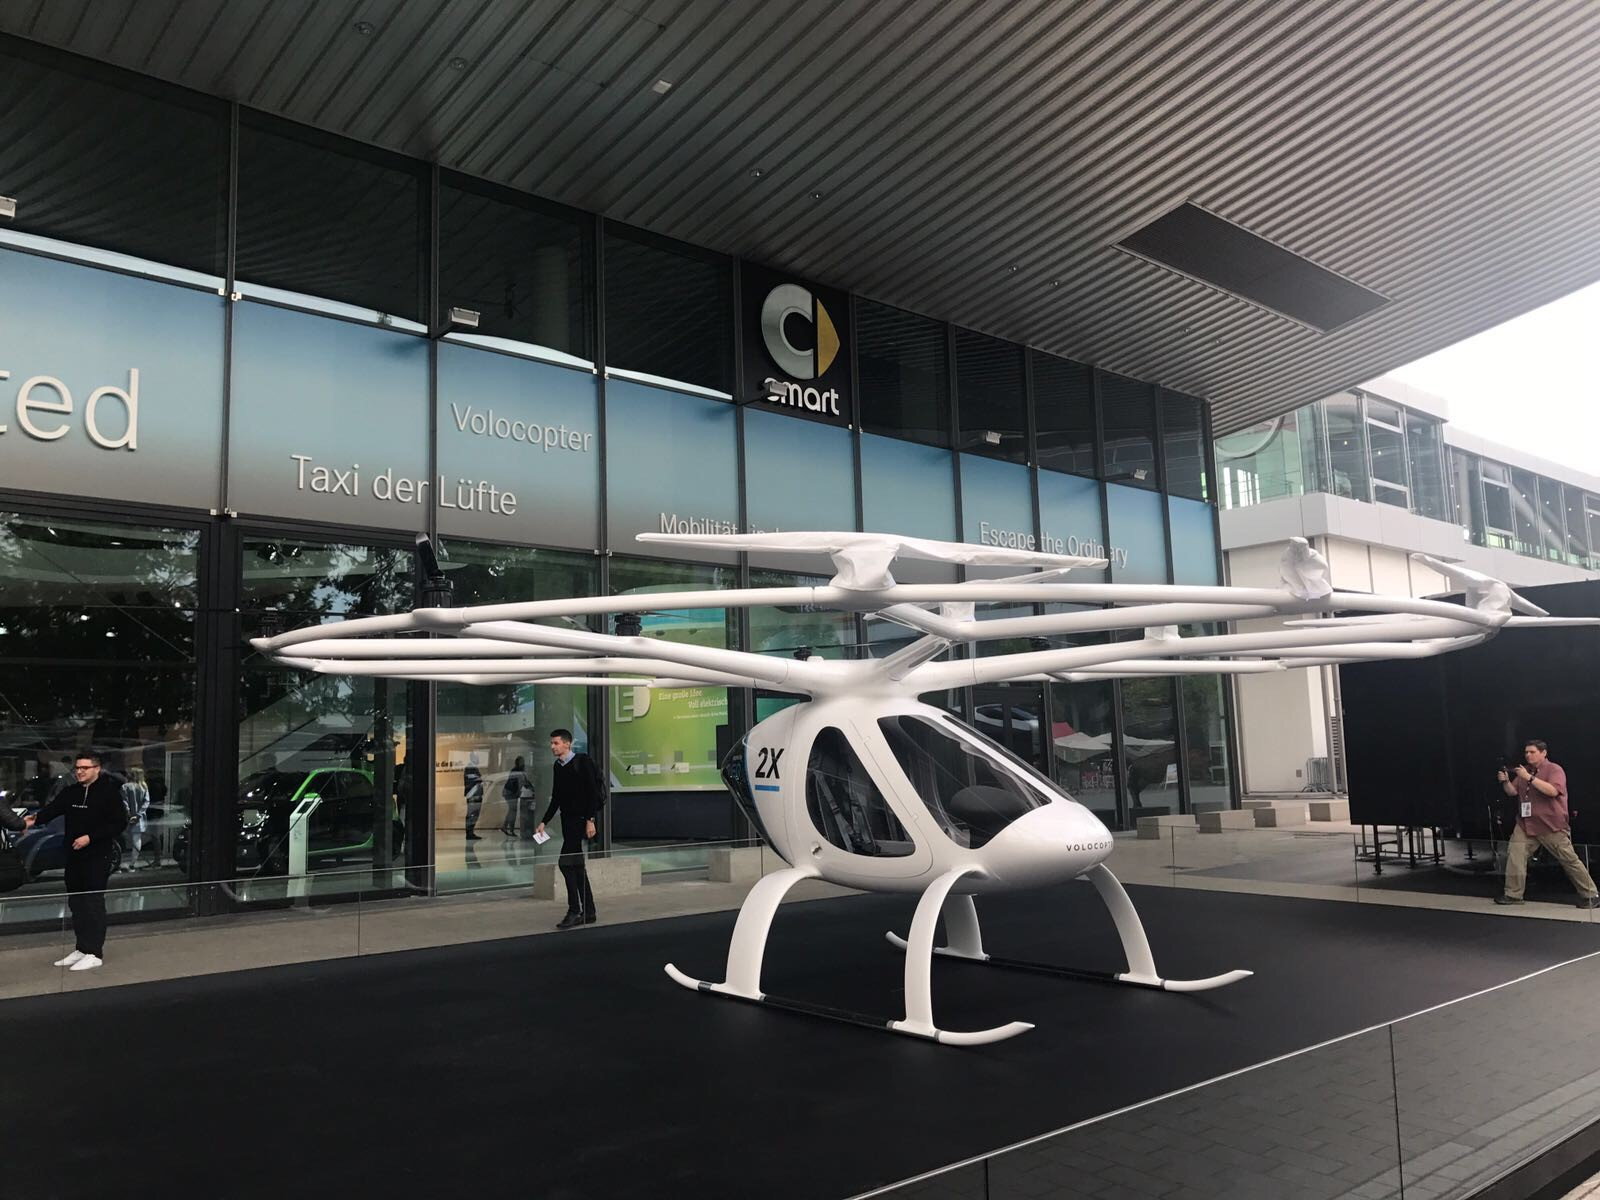 The Volocopter was on display in Frankfurt. Daimler has invested millions into the company and Dubai is reportedly interested in using them as flying taxis.